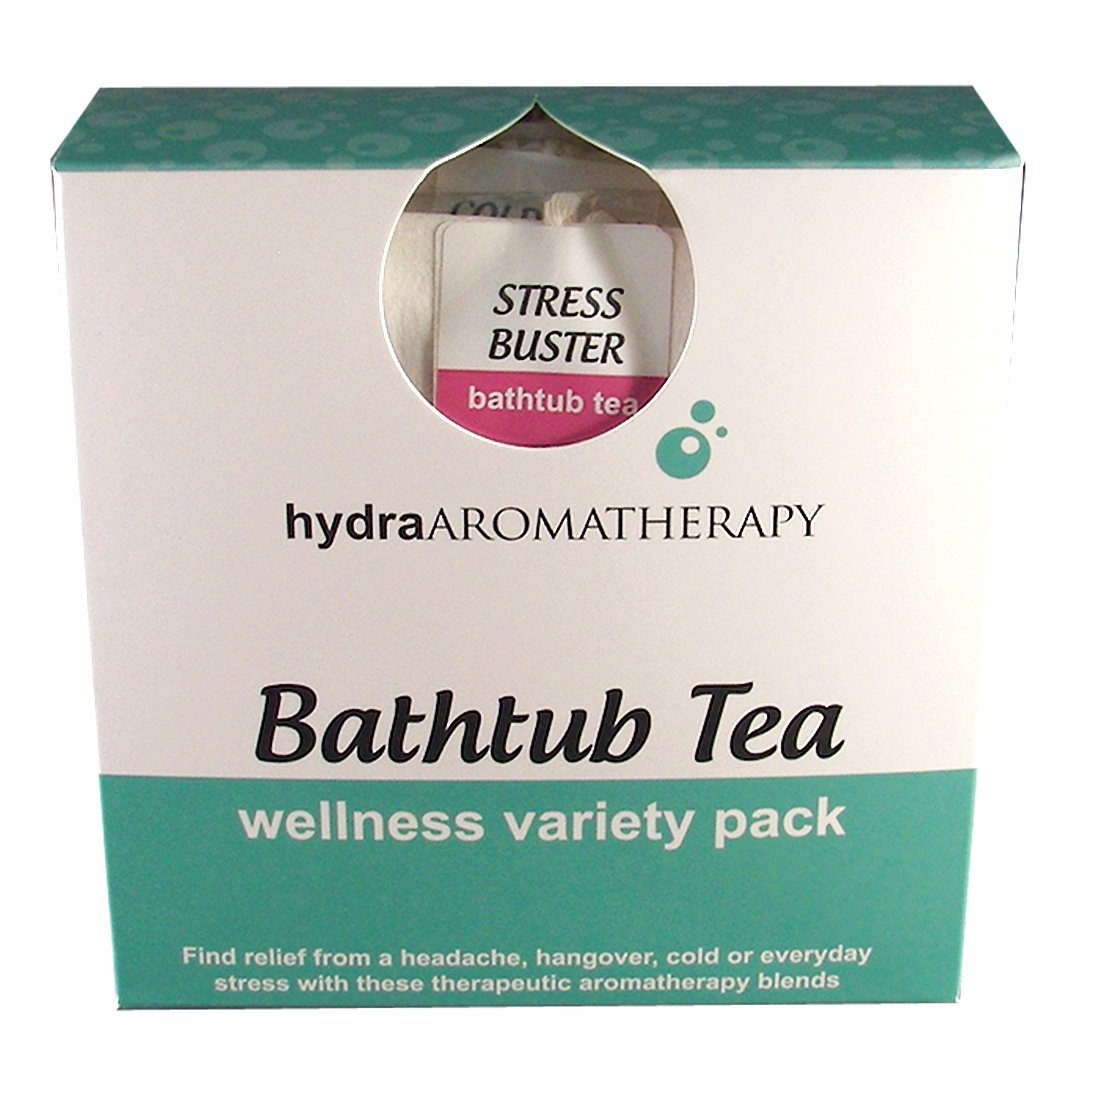 hydraAromatherapy Bathtub Tea-Wellness Variety Pack Cold & Flu Buster, Hangover Buster, Headache Buster and Stress Buster Bathtub Teas by hydraAromatherapy